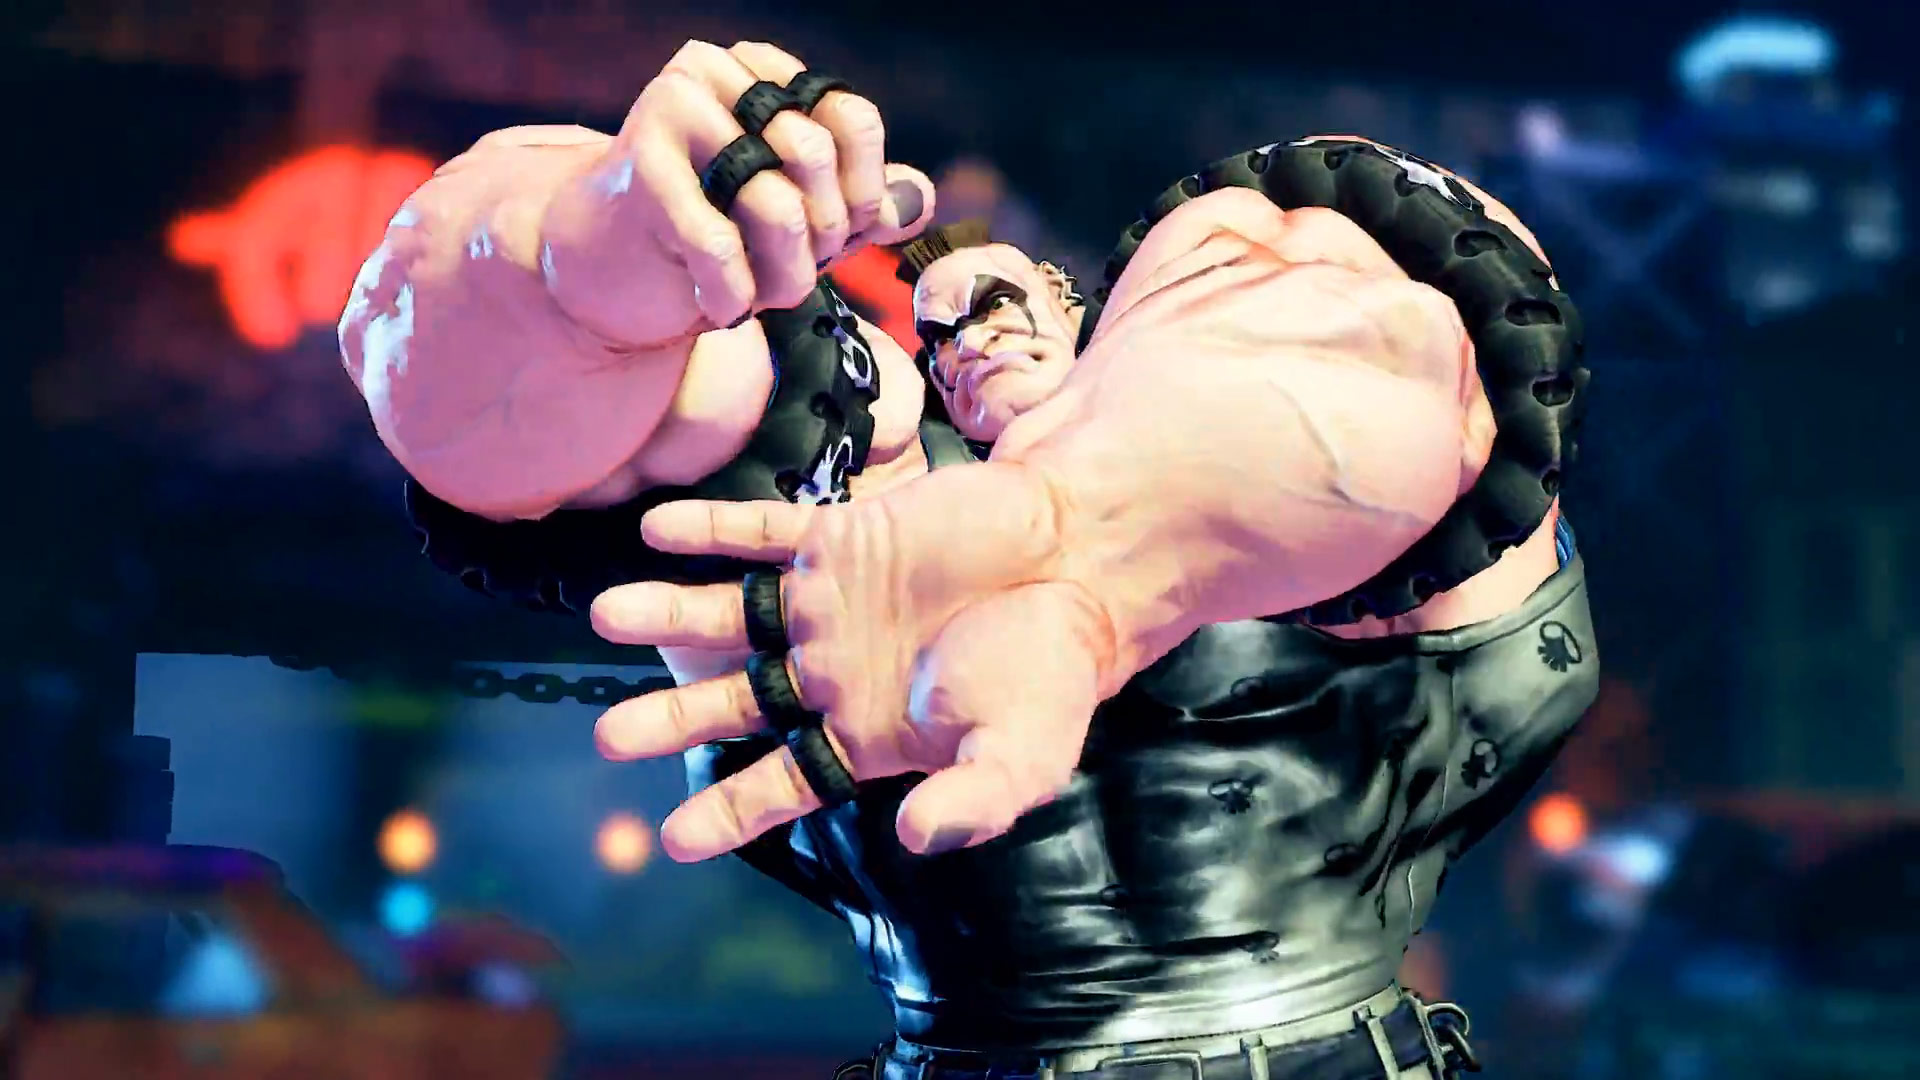 Abigail Street Fighter 5 screen shots 2 out of 11 image gallery